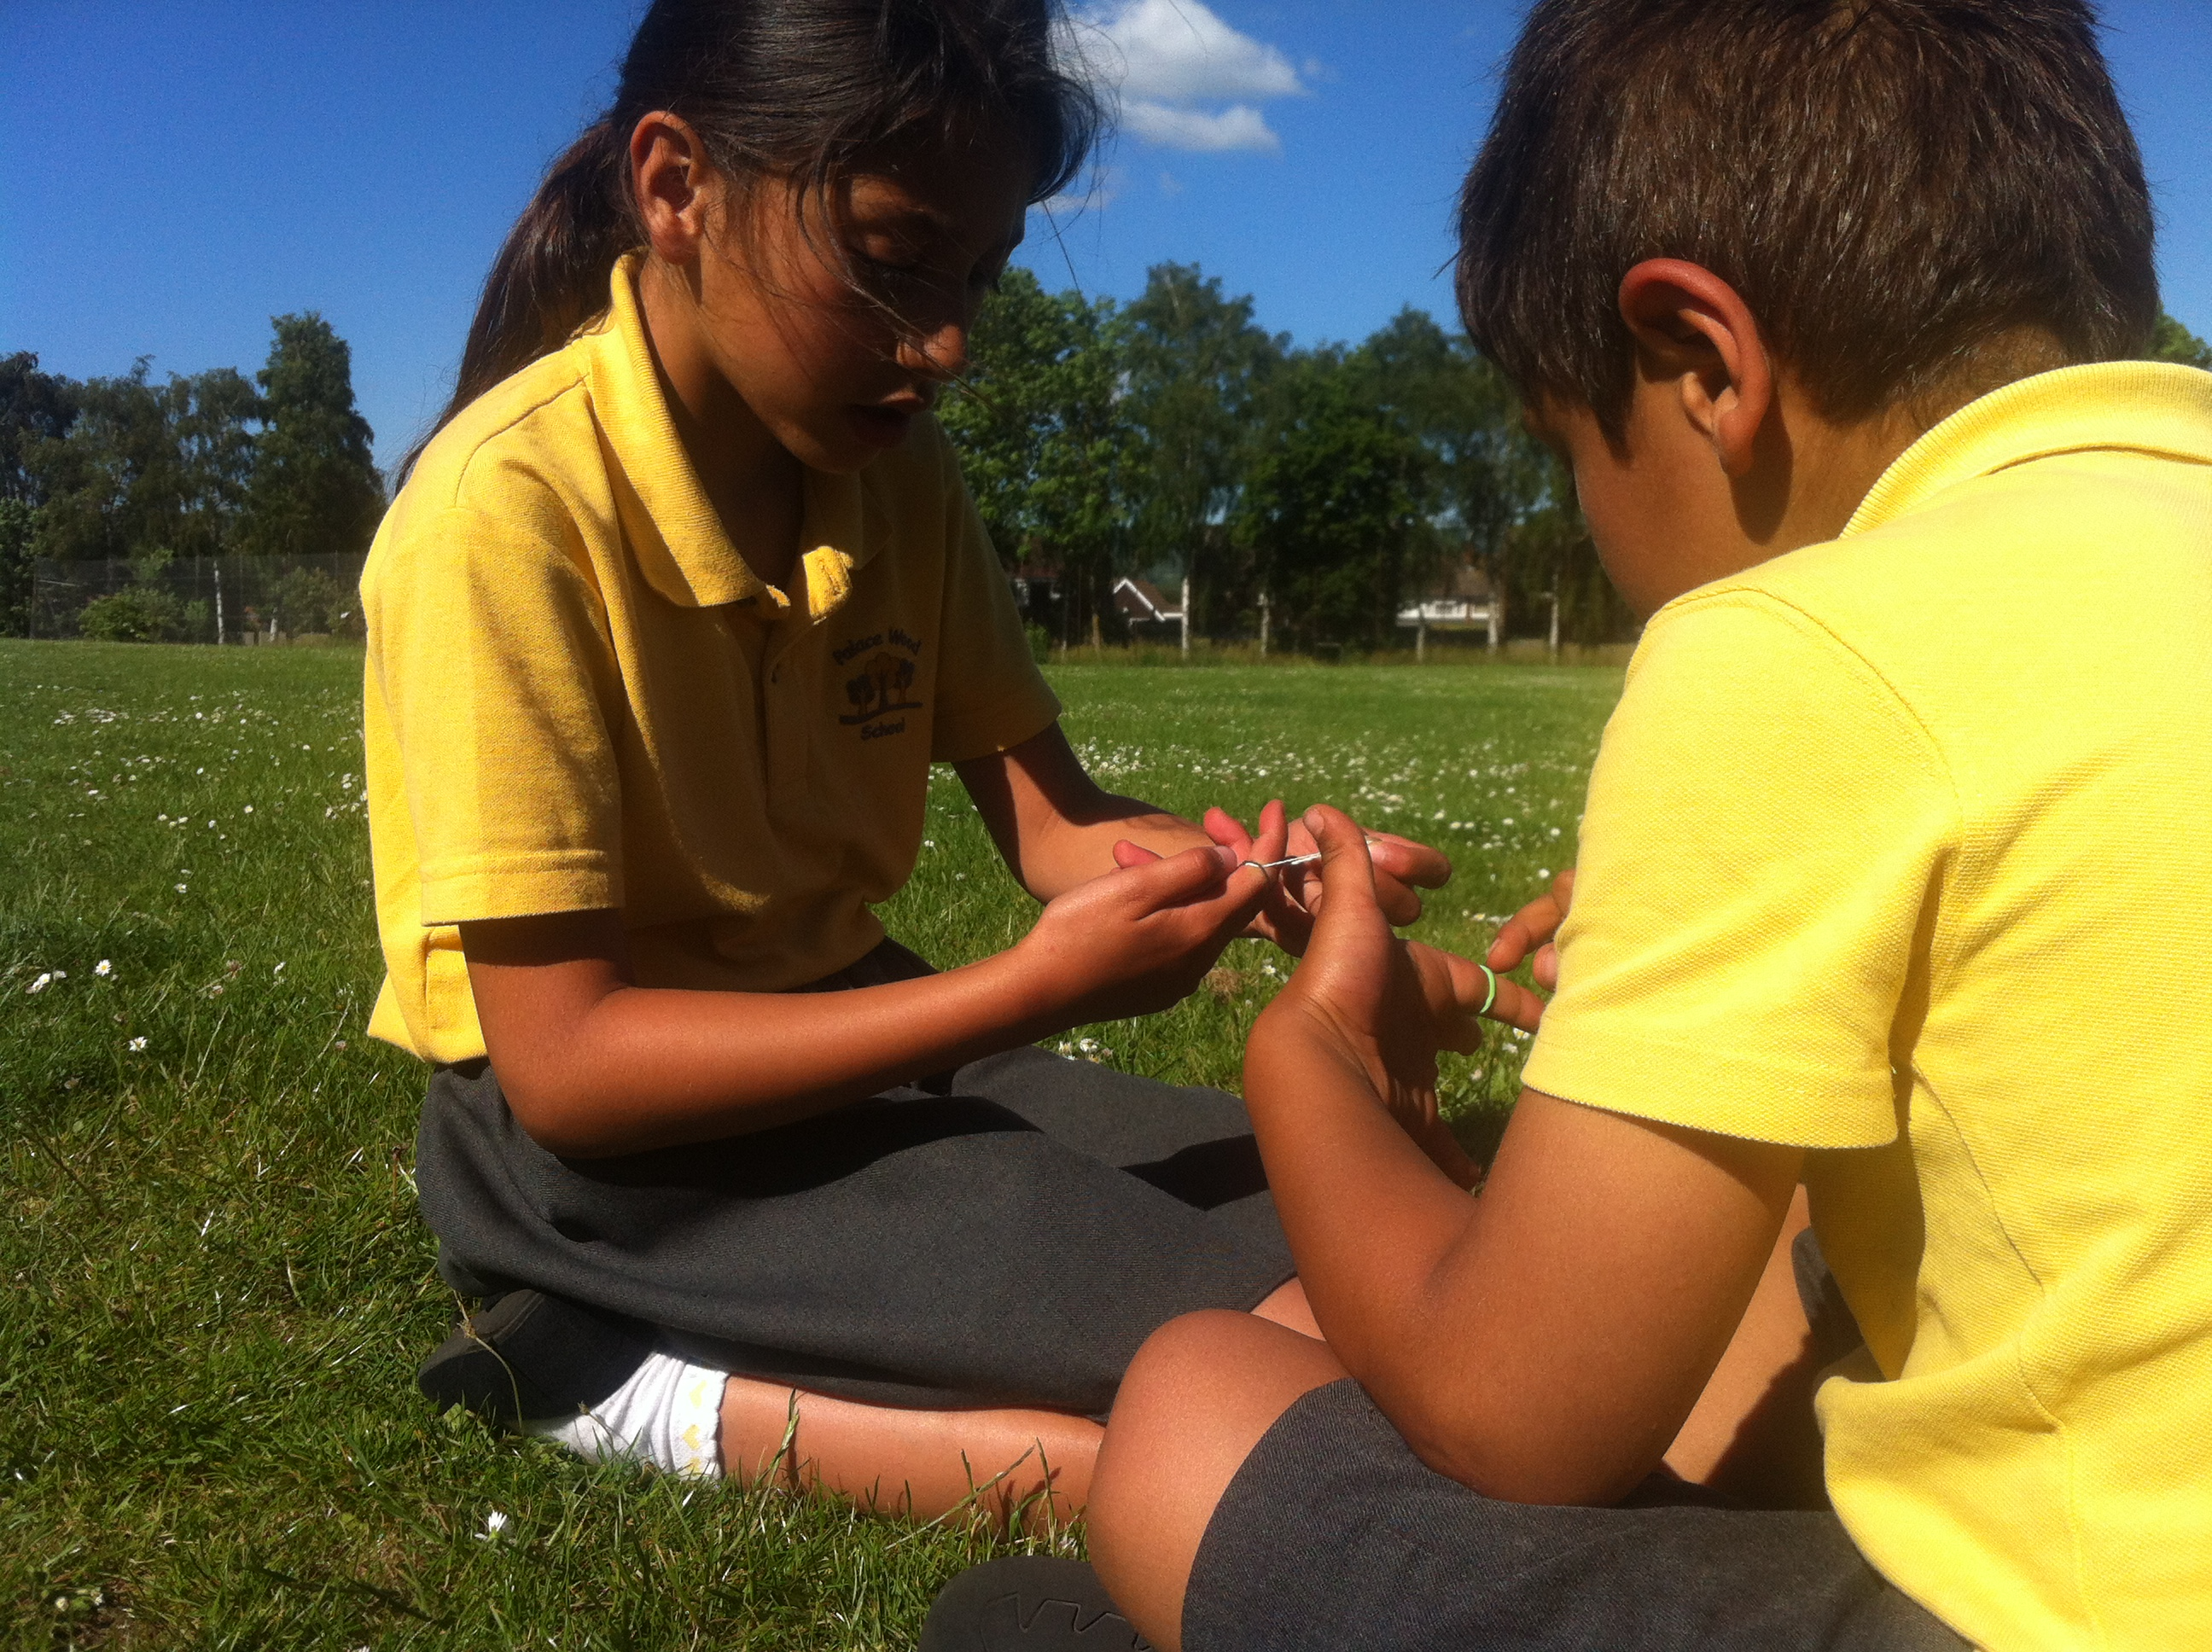 Making daisy chains at the park after school